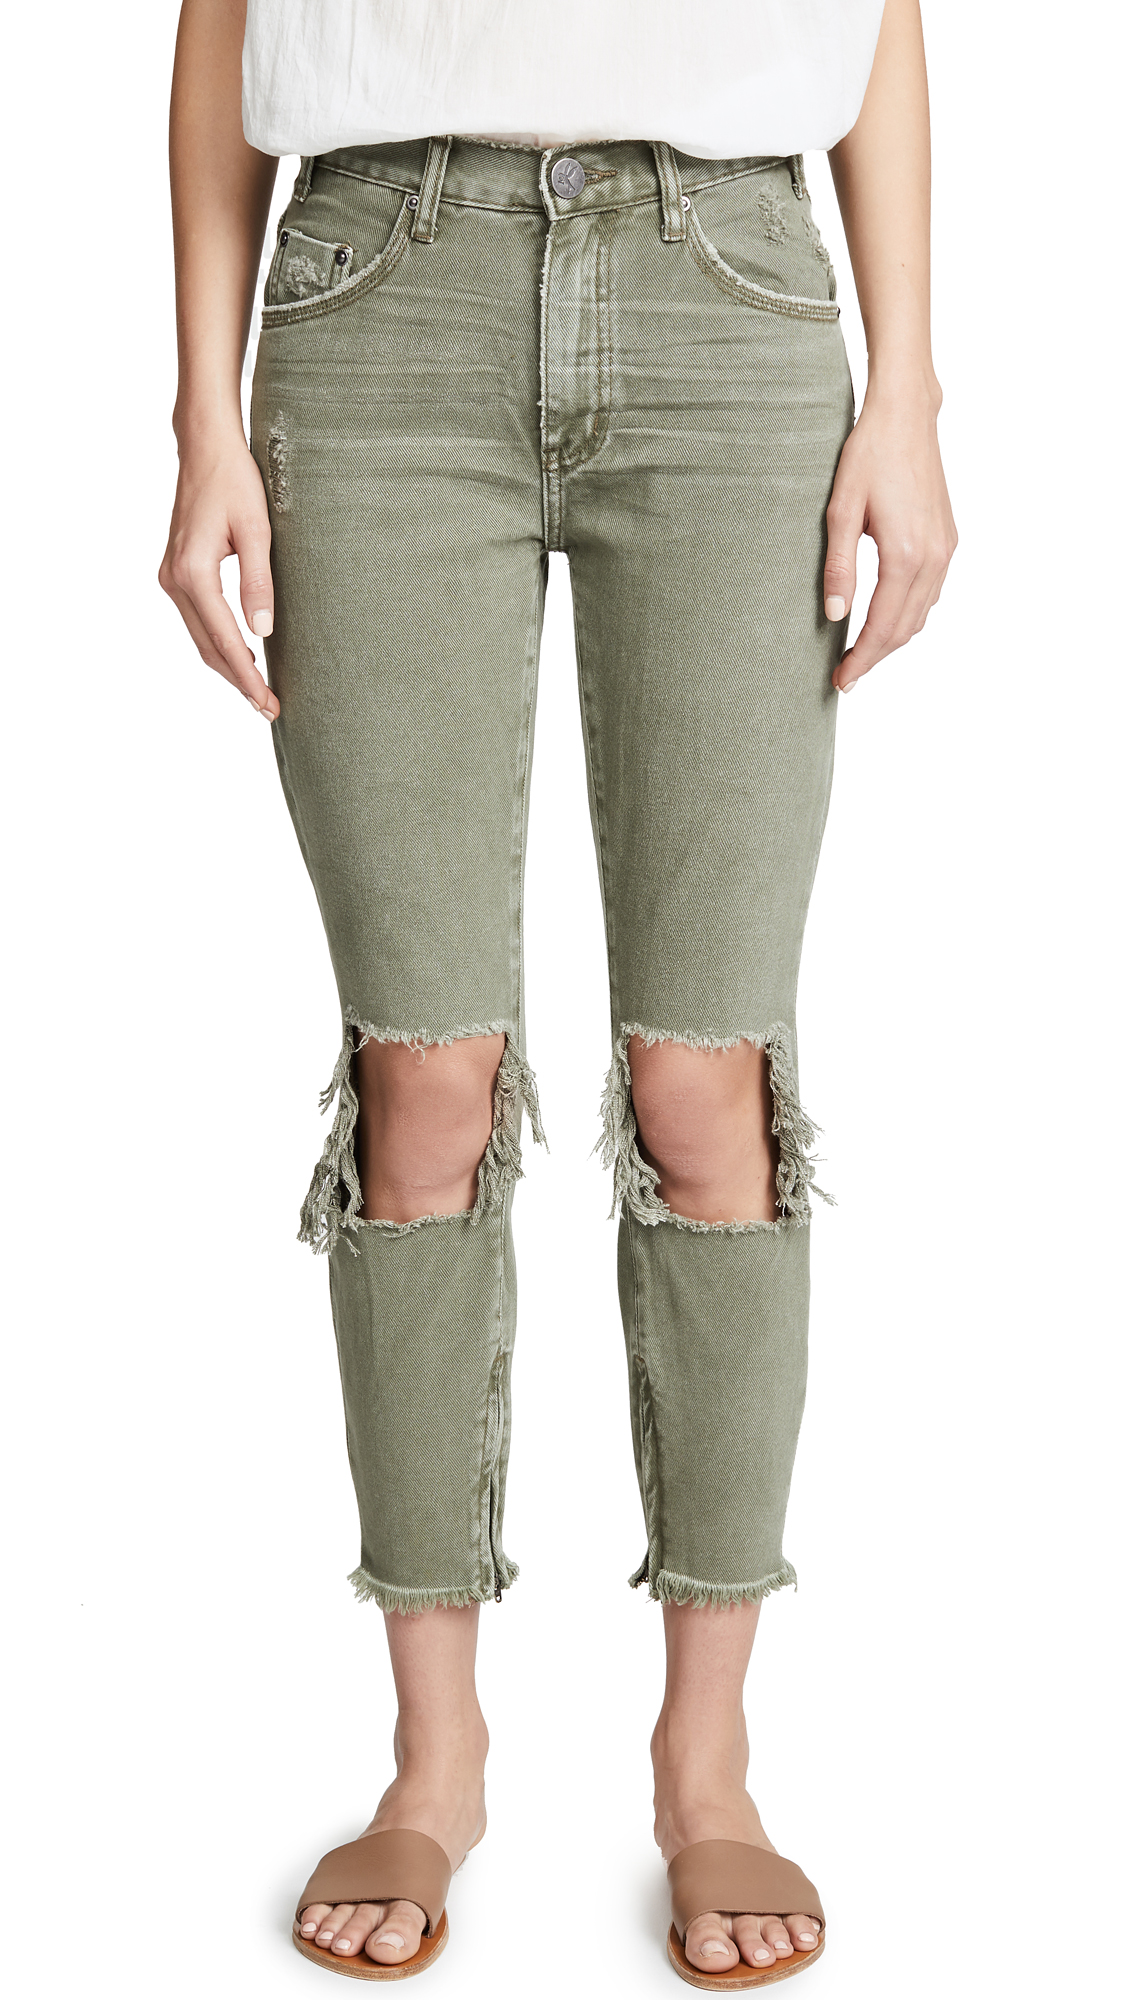 One Teaspoon High Waist Freebird Jeans In Super Khaki